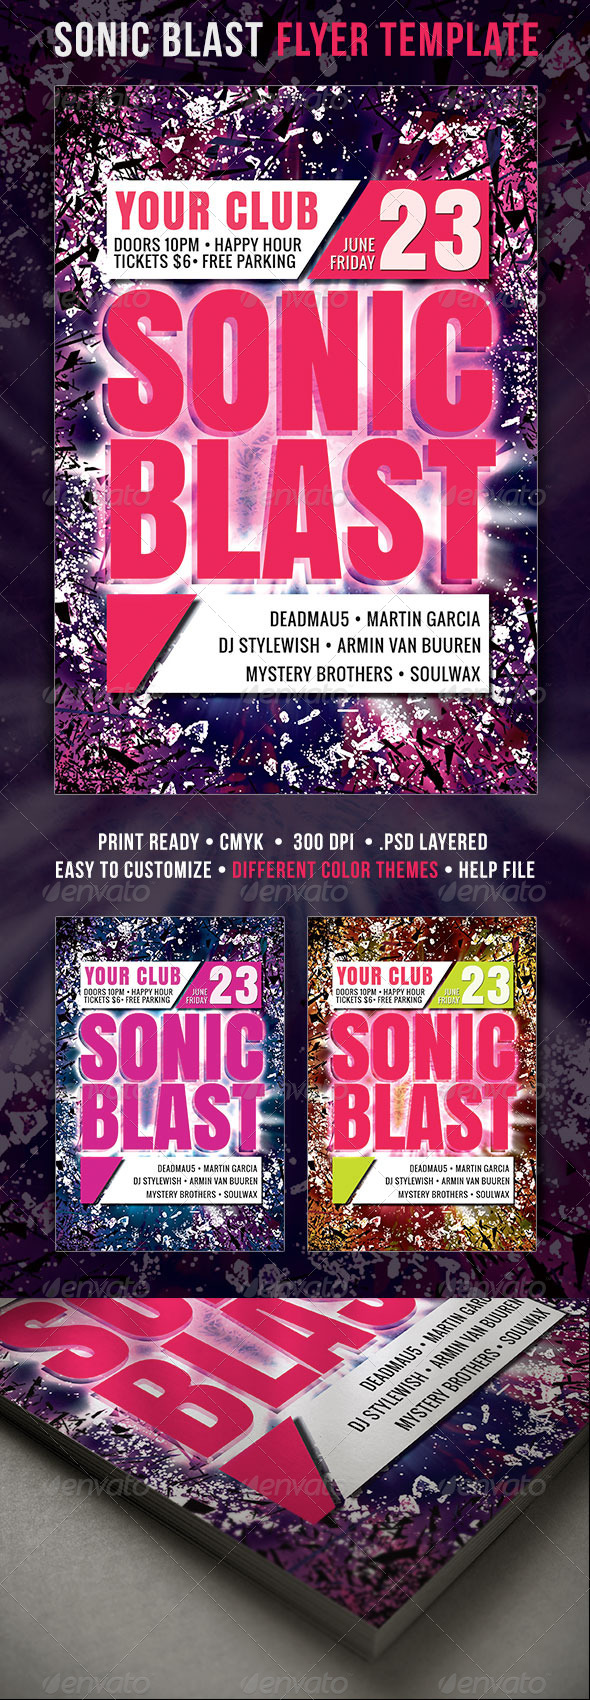 GraphicRiver Sonic Blast Flyer 4332417